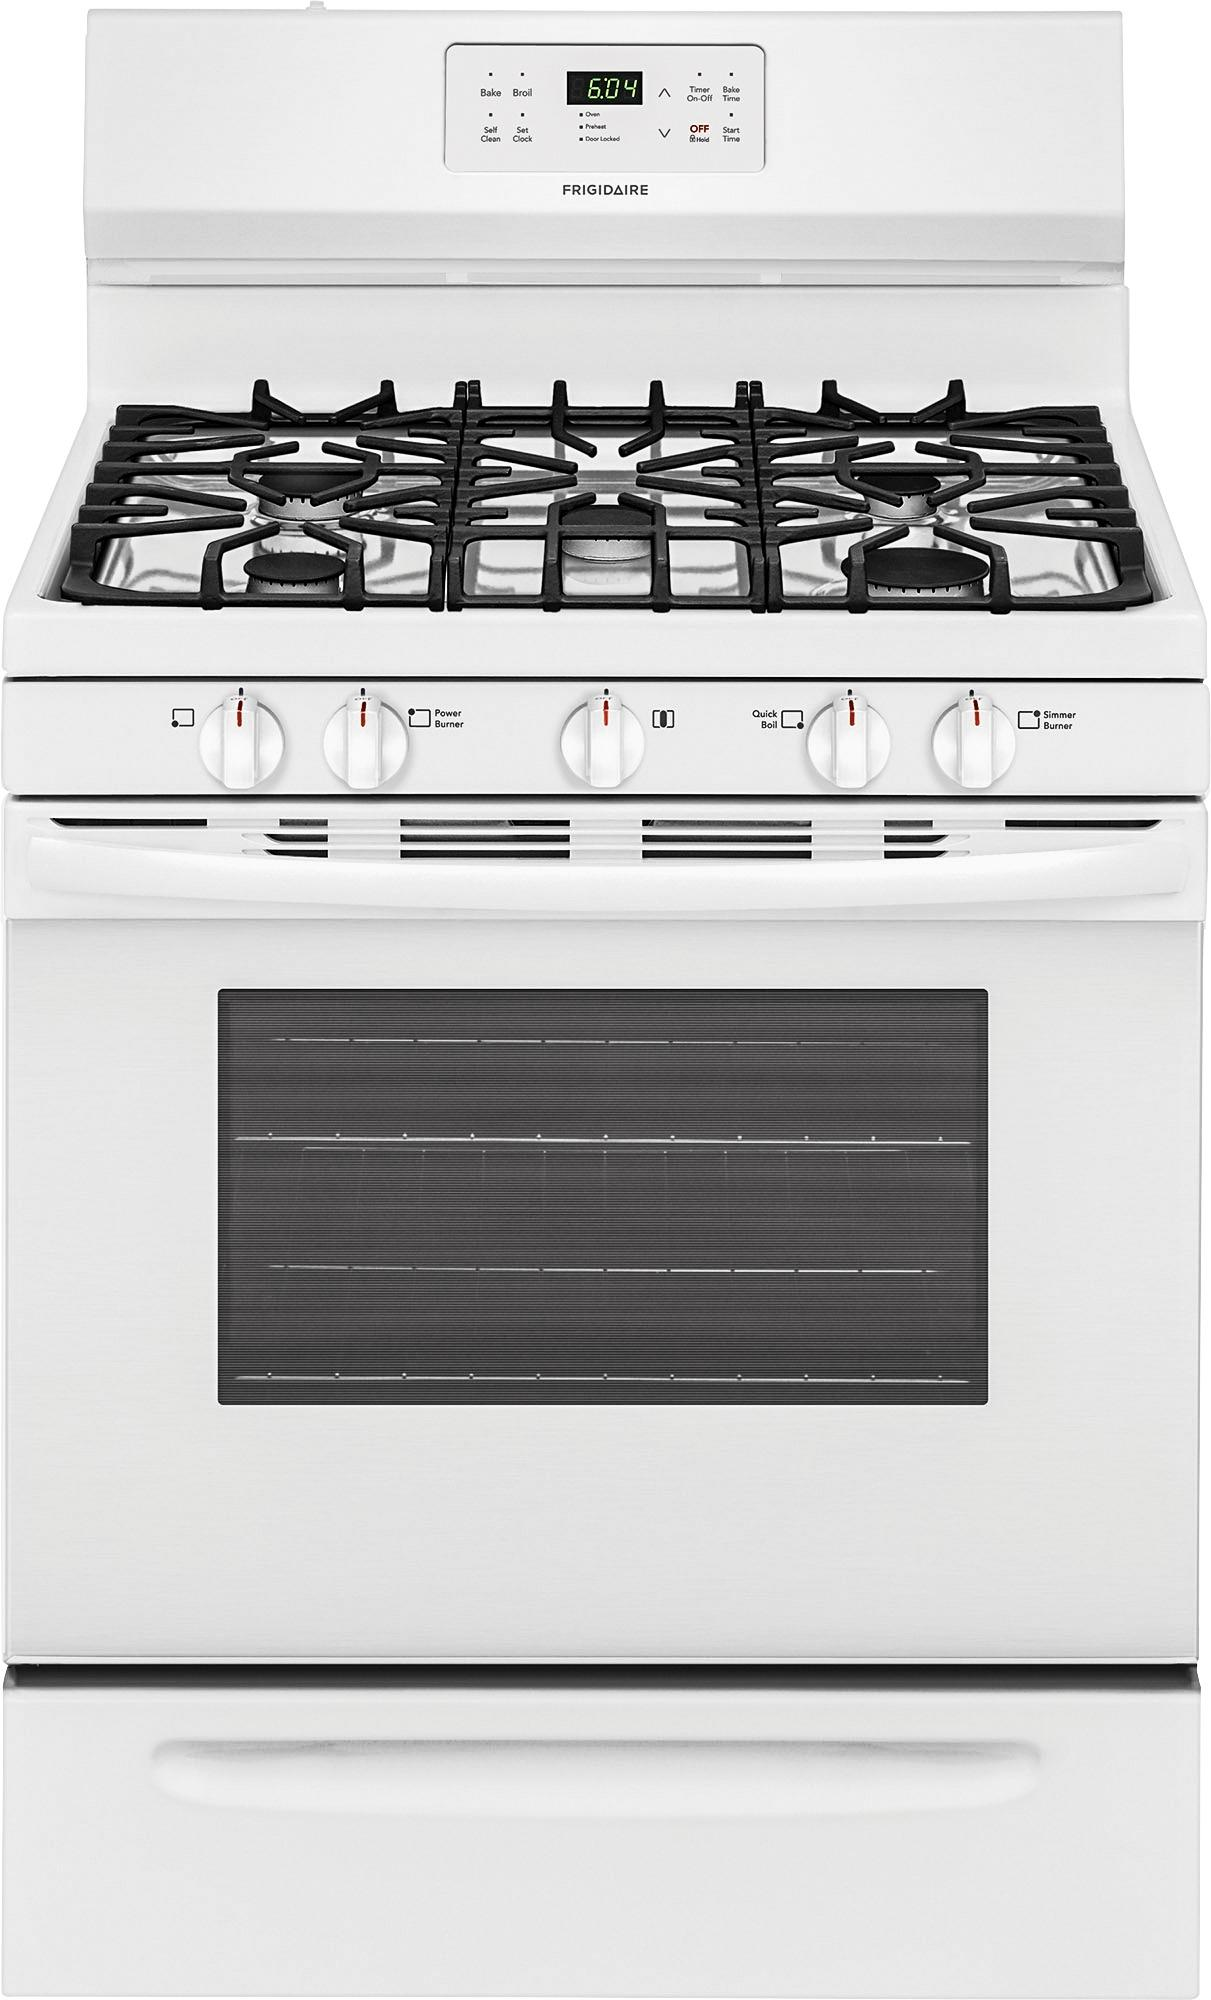 Frigidaire Stove Parts Canada Frigidaire 5 Cu Ft Self Cleaning Freestanding Gas Range White